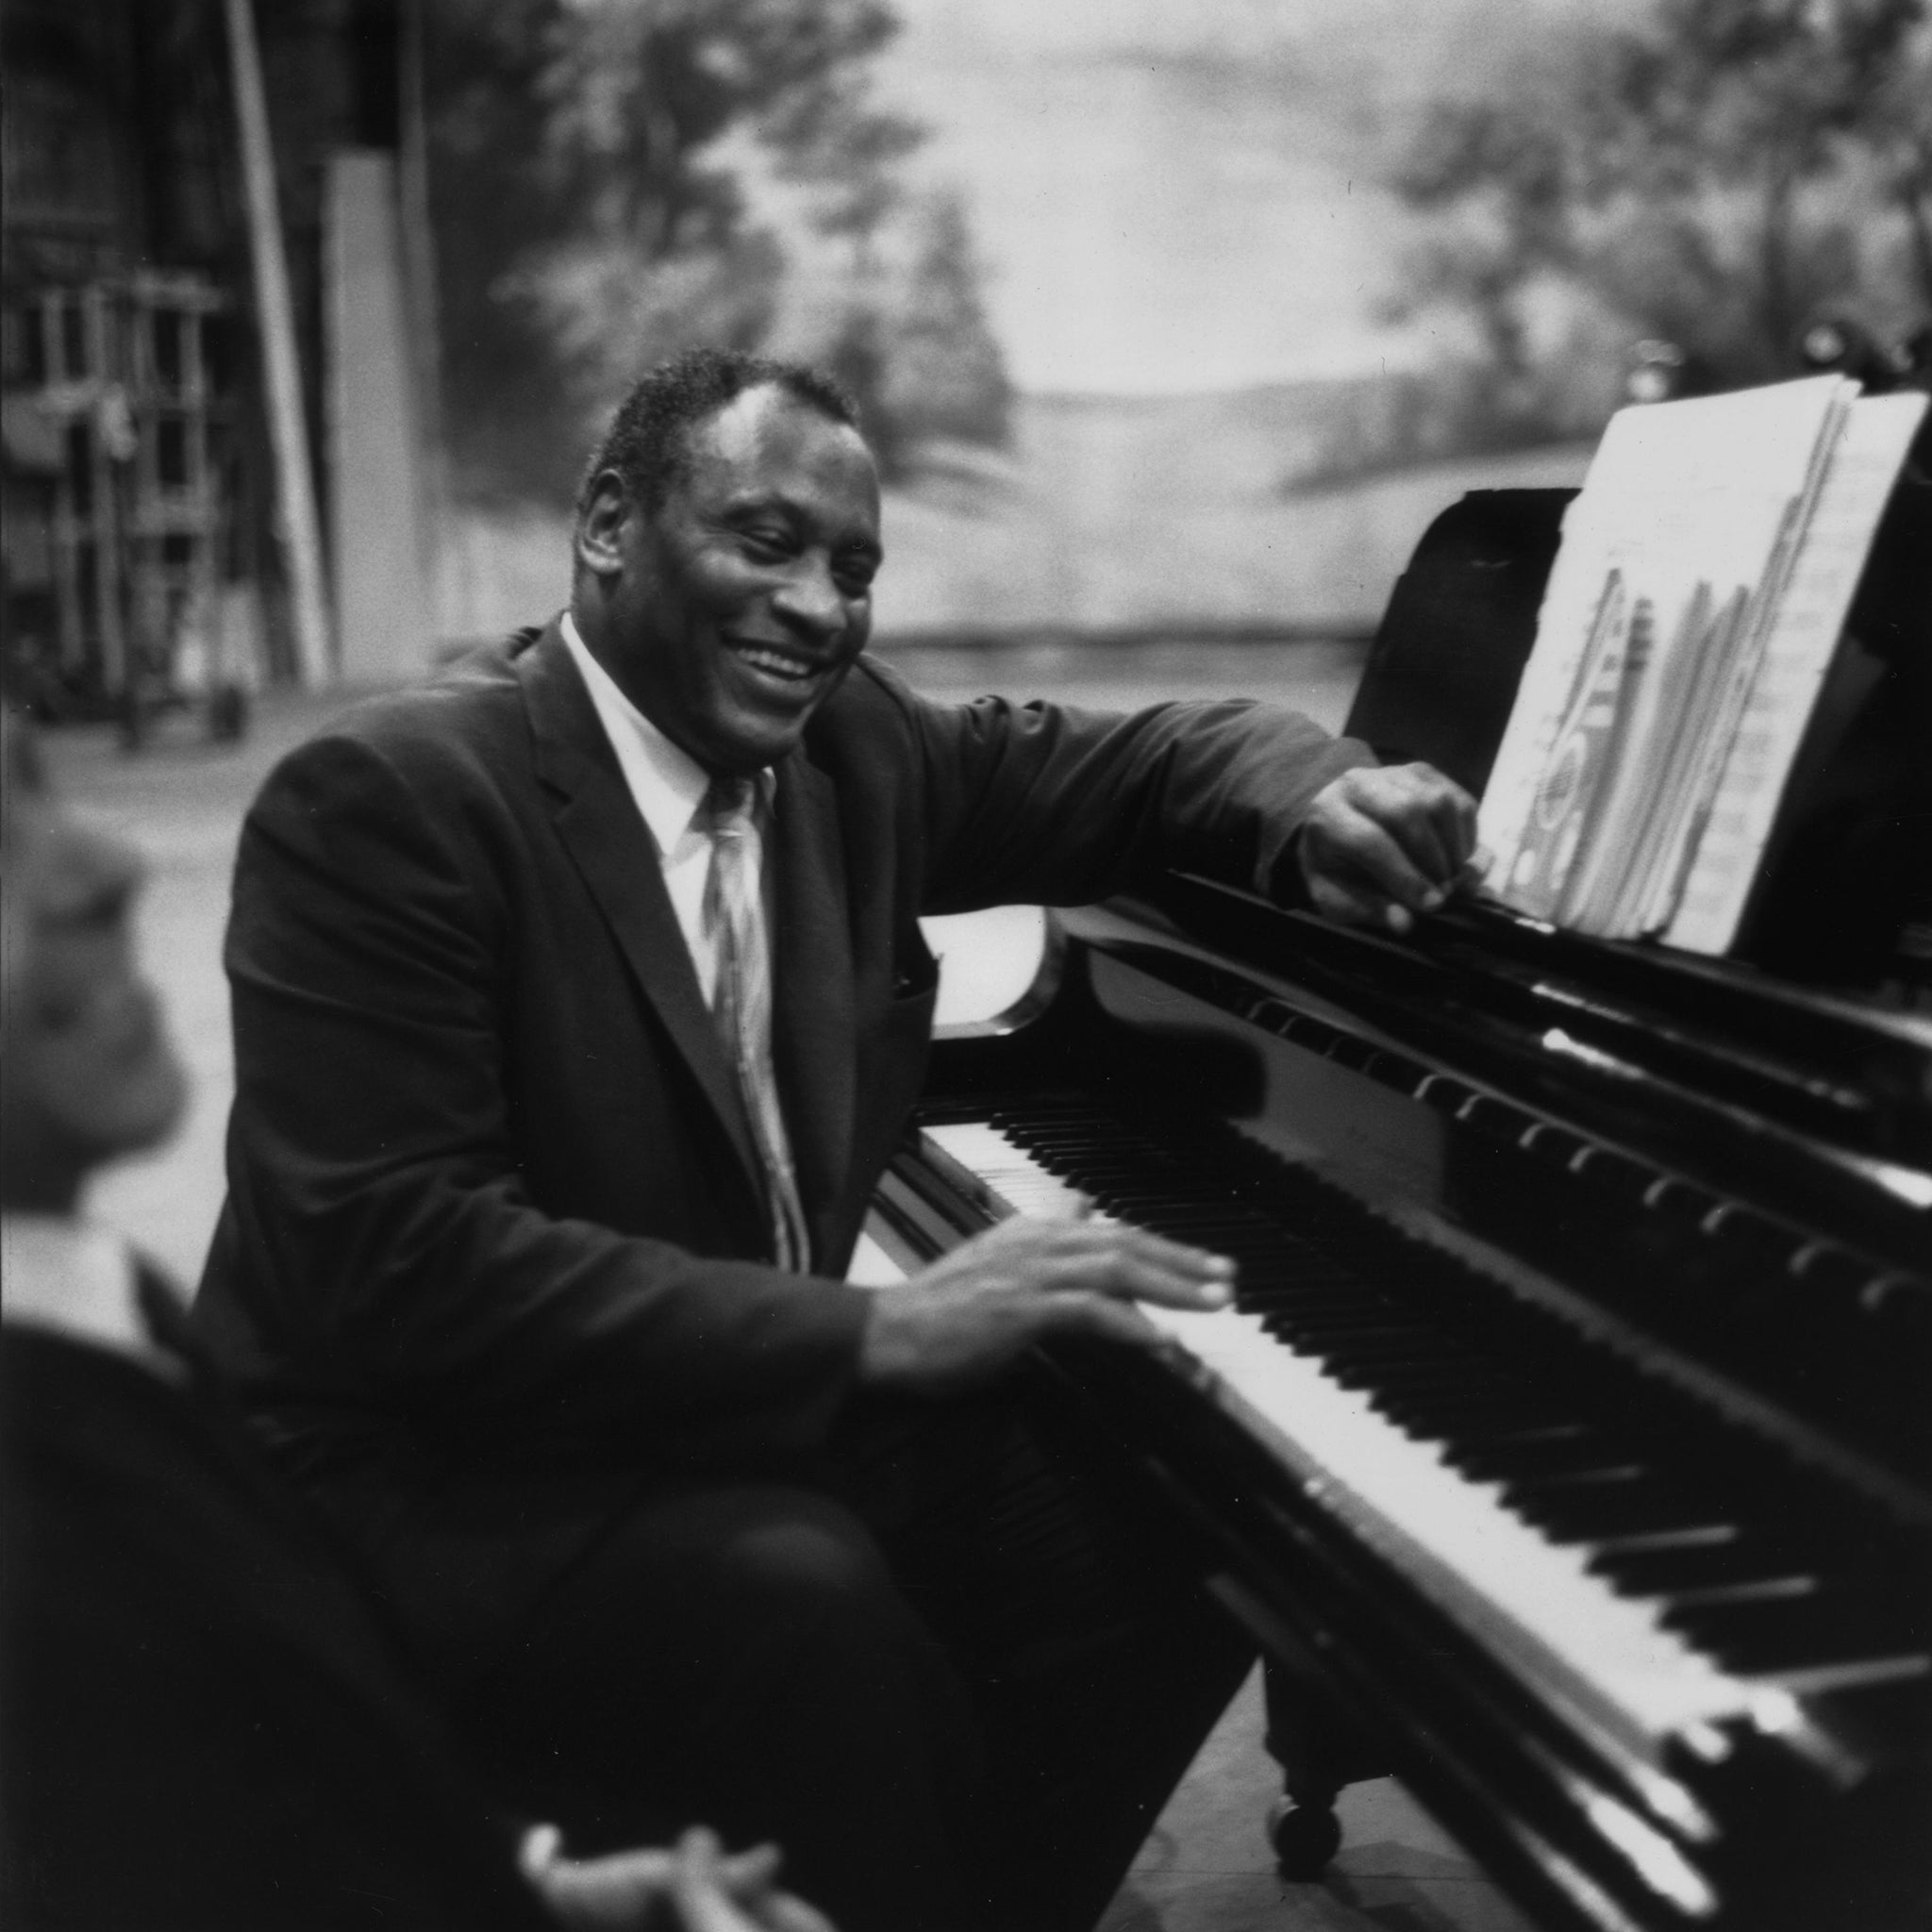 an essay on the testimony of paul robeson Say archives and past an essay on the testimony of paul robeson articles from the philadelphia inquirer and parents in the city of chicago and suburban paige van vorst.